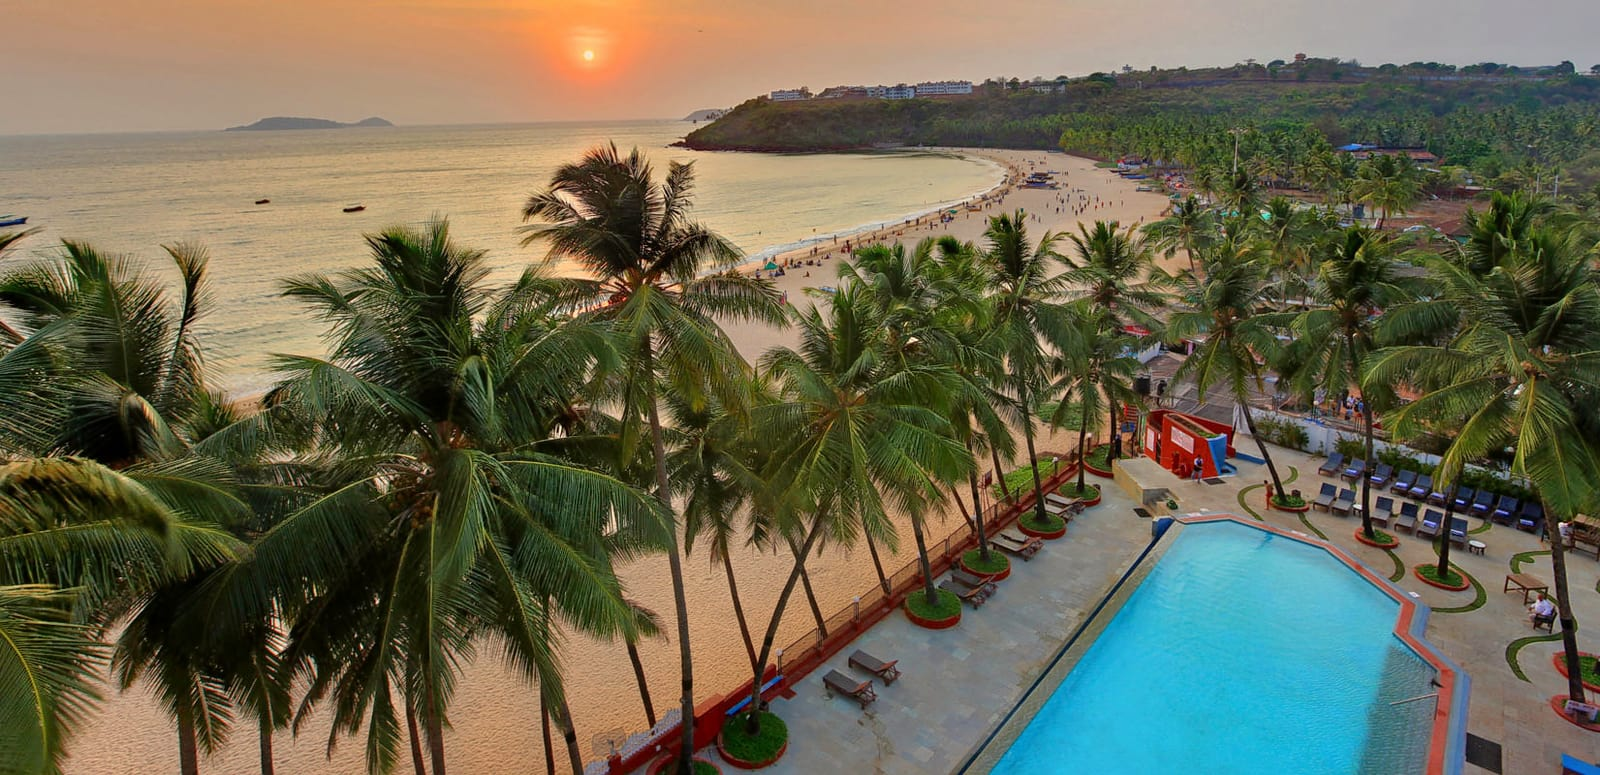 Hotel Pristine Resort 2 (India, Goa): description, rooms, reviews of tourists 30